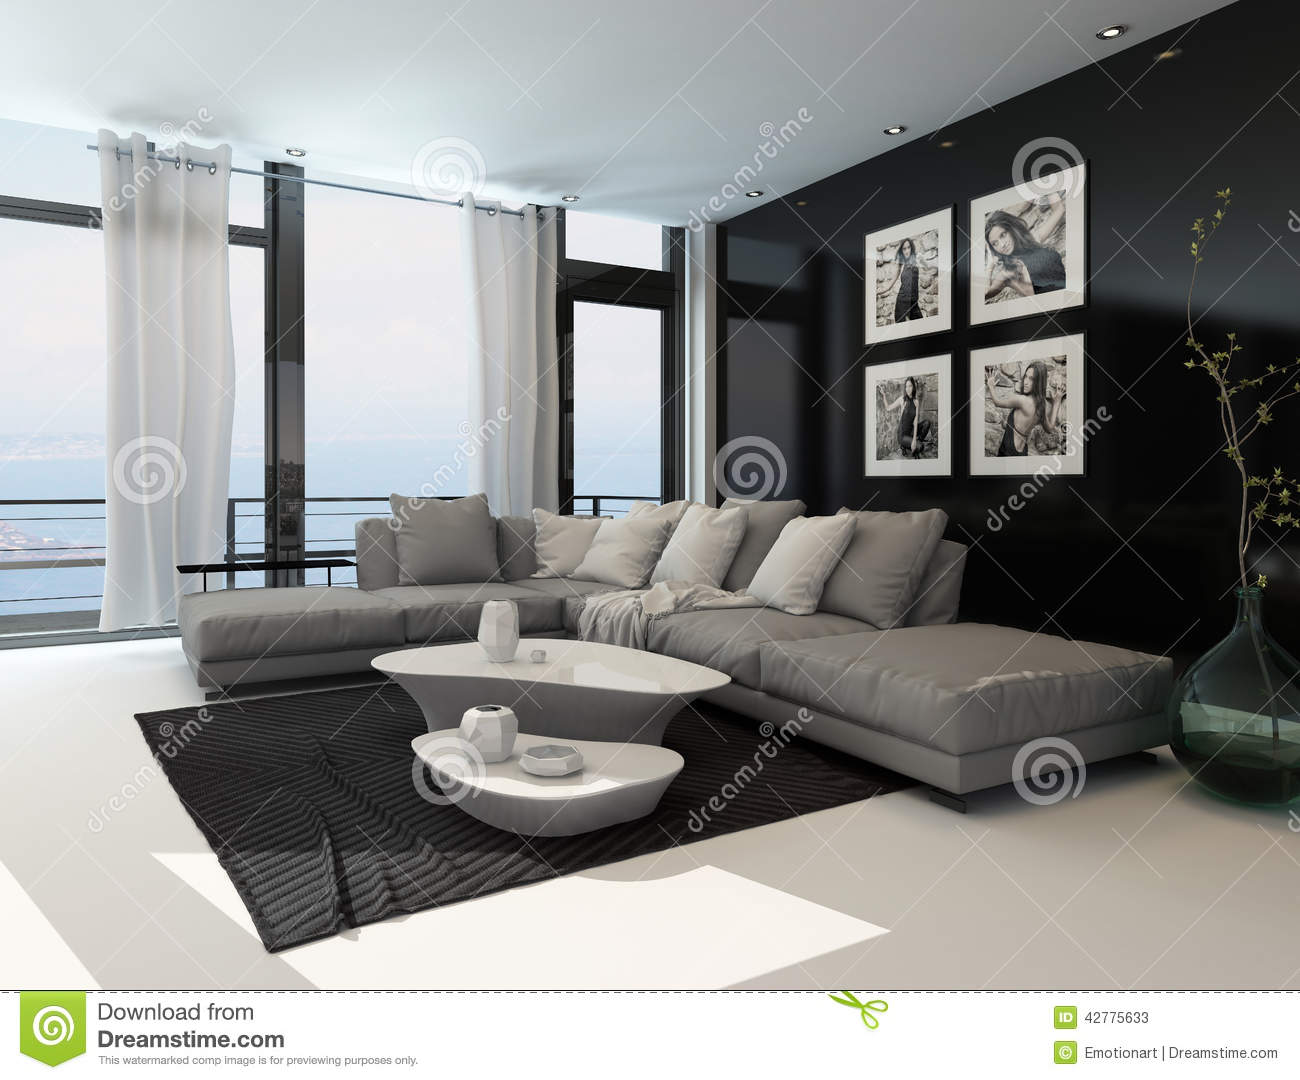 Lounge interior with a dark accent wall stock illustration